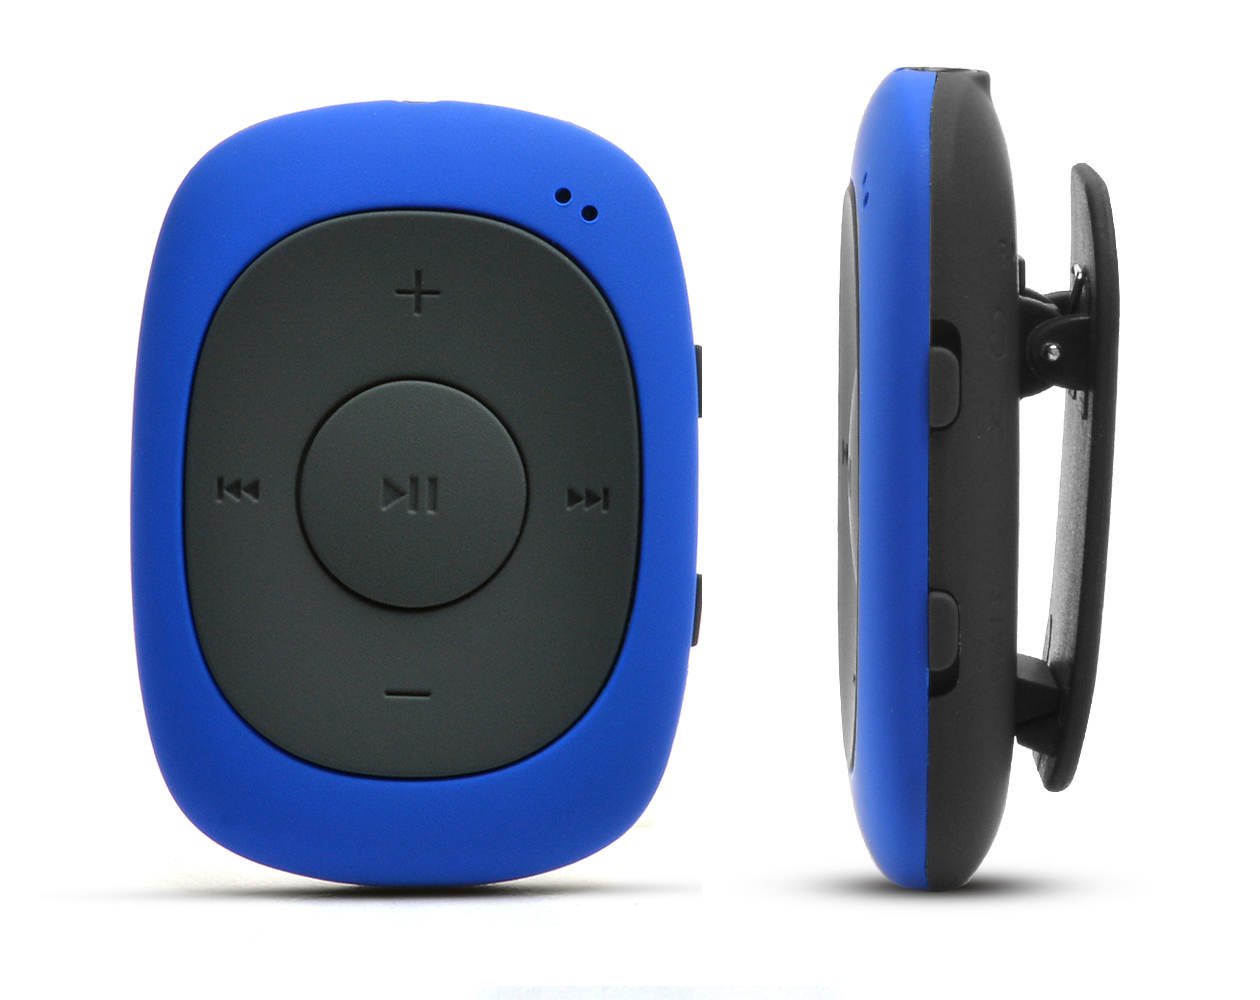 AGPtEK G02 MP3 Player 8GB Independent Buttons Portable ClipPlayer Music with FM Radio Supporting MP3, WMA WAV, blue